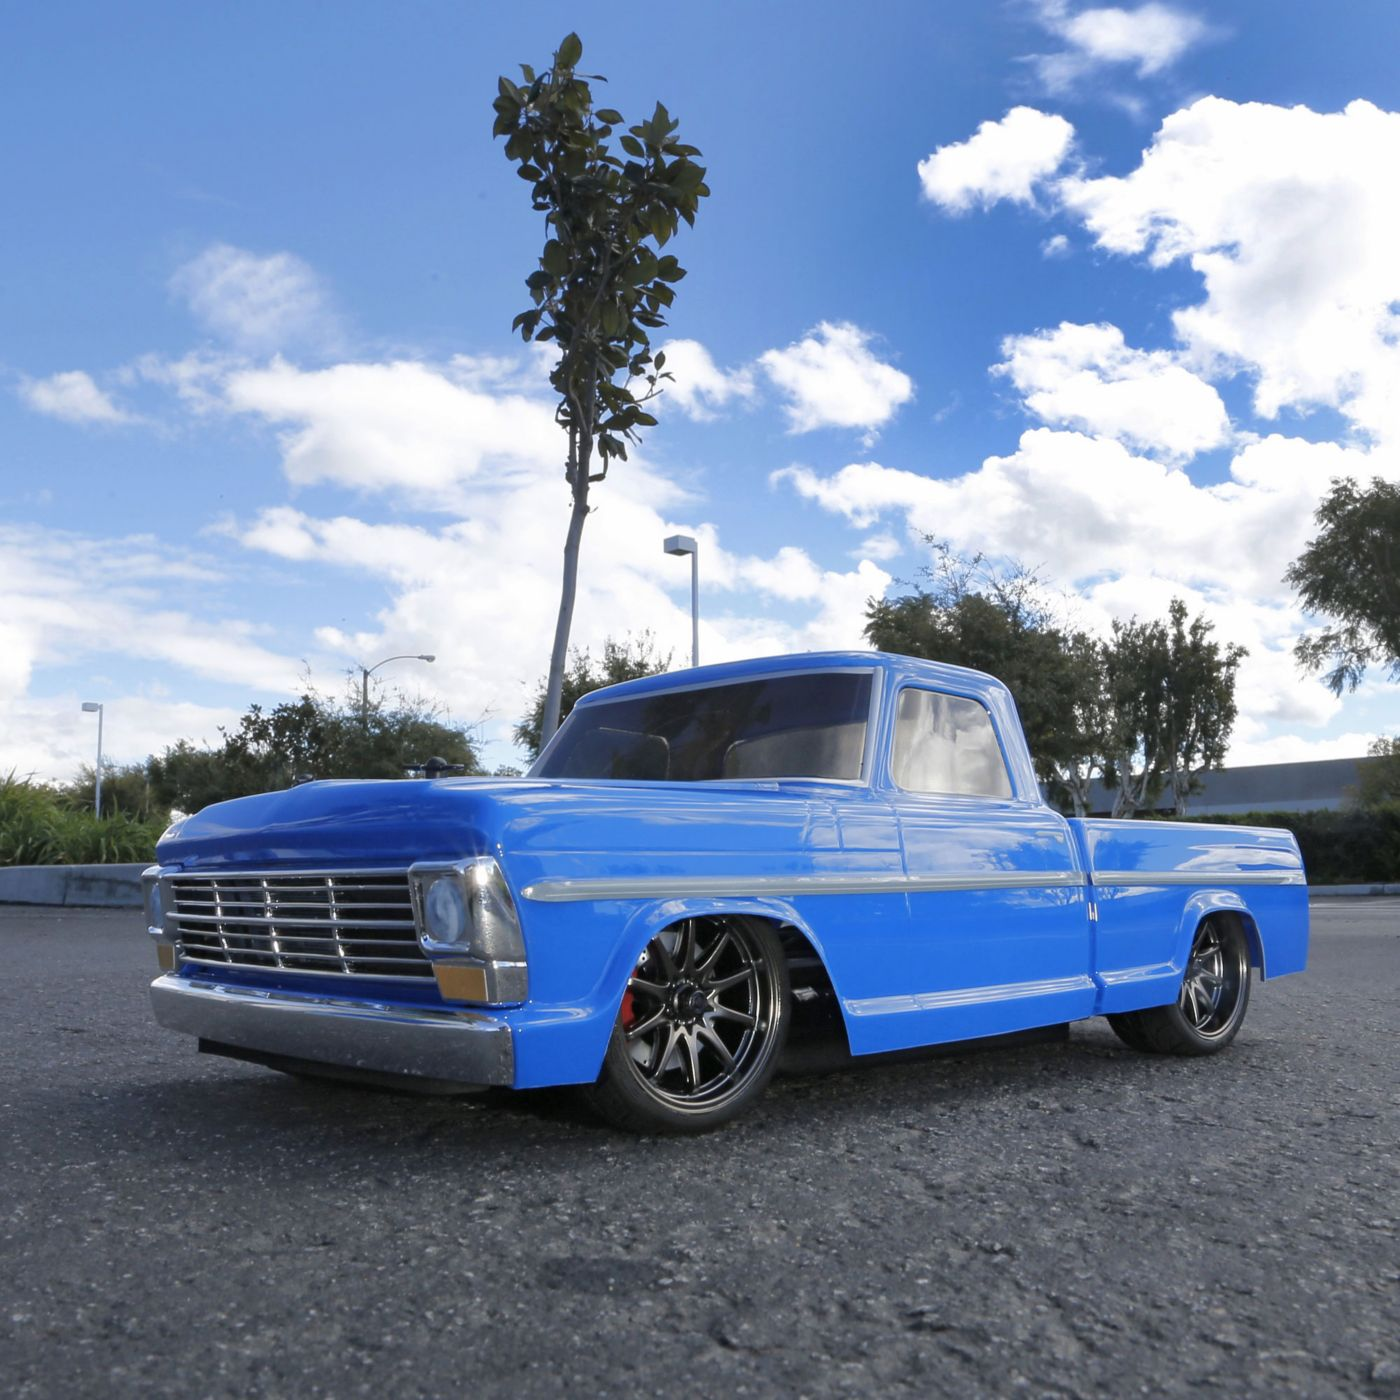 1968 ford f 100 pick up truck r c v100 s rtr by vaterra 1 10 scale choice gear. Black Bedroom Furniture Sets. Home Design Ideas